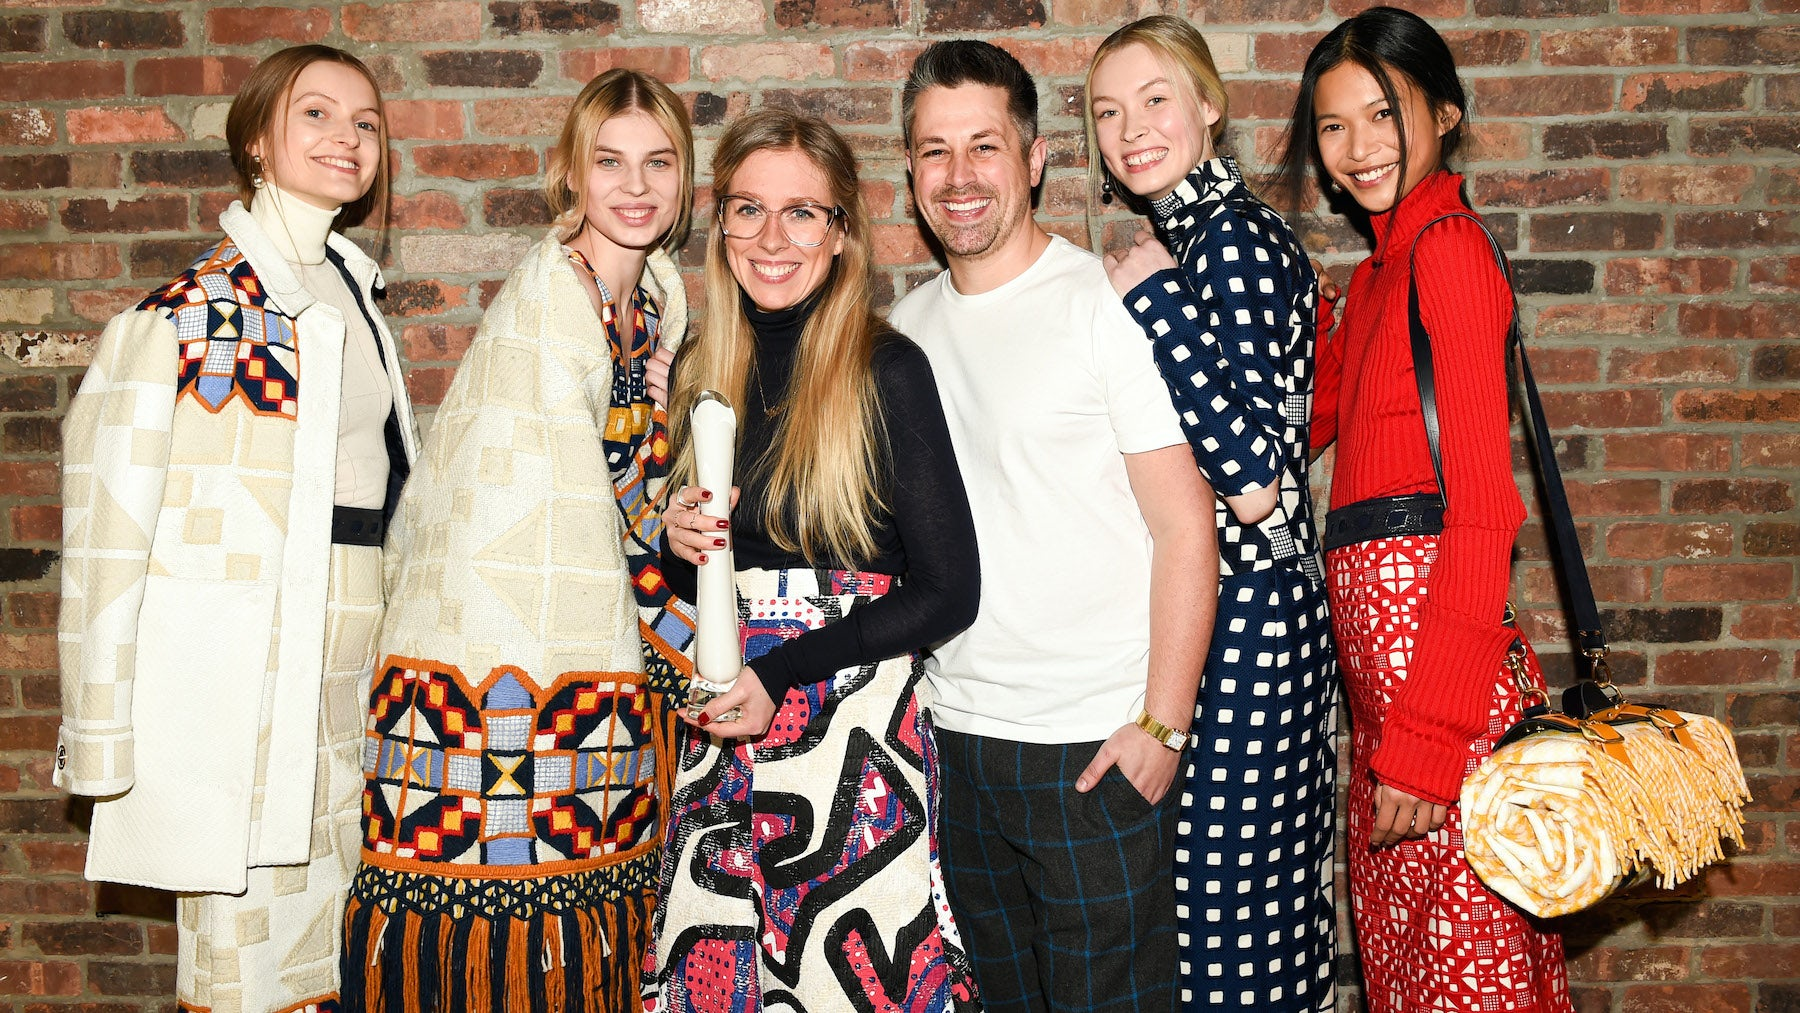 Catherine Teatum and Rob Jones with models wearing their designs   Source: Courtesy